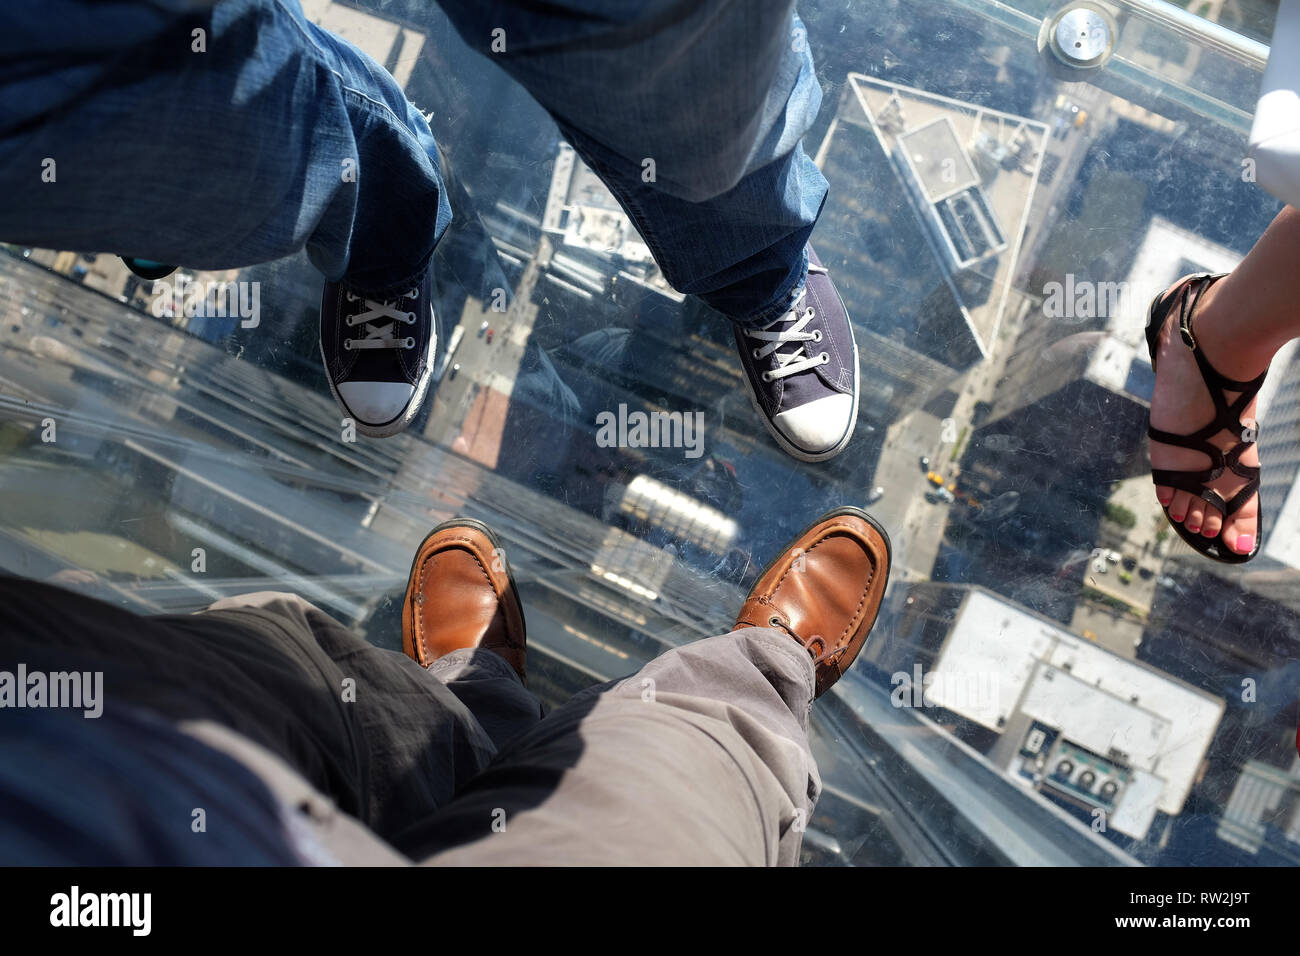 Sears Tower Chicago - Stock Image